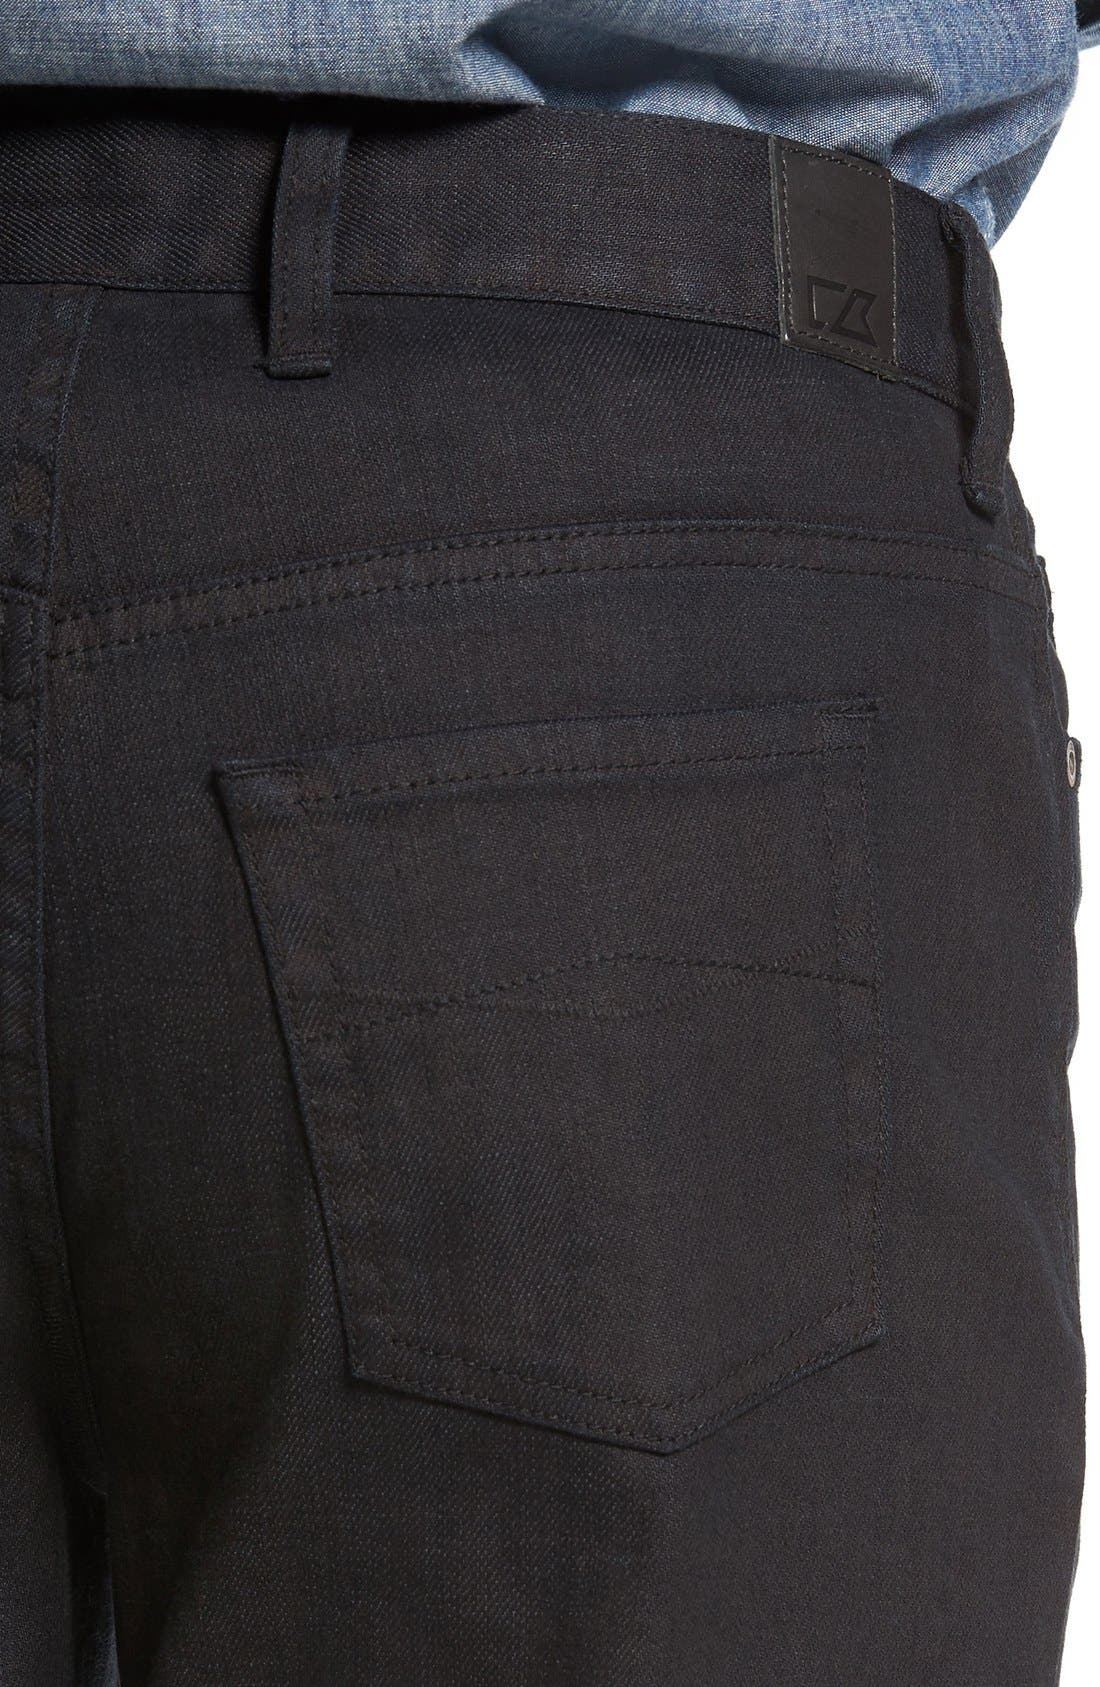 Greenwood Relaxed Fit Jeans,                             Alternate thumbnail 7, color,